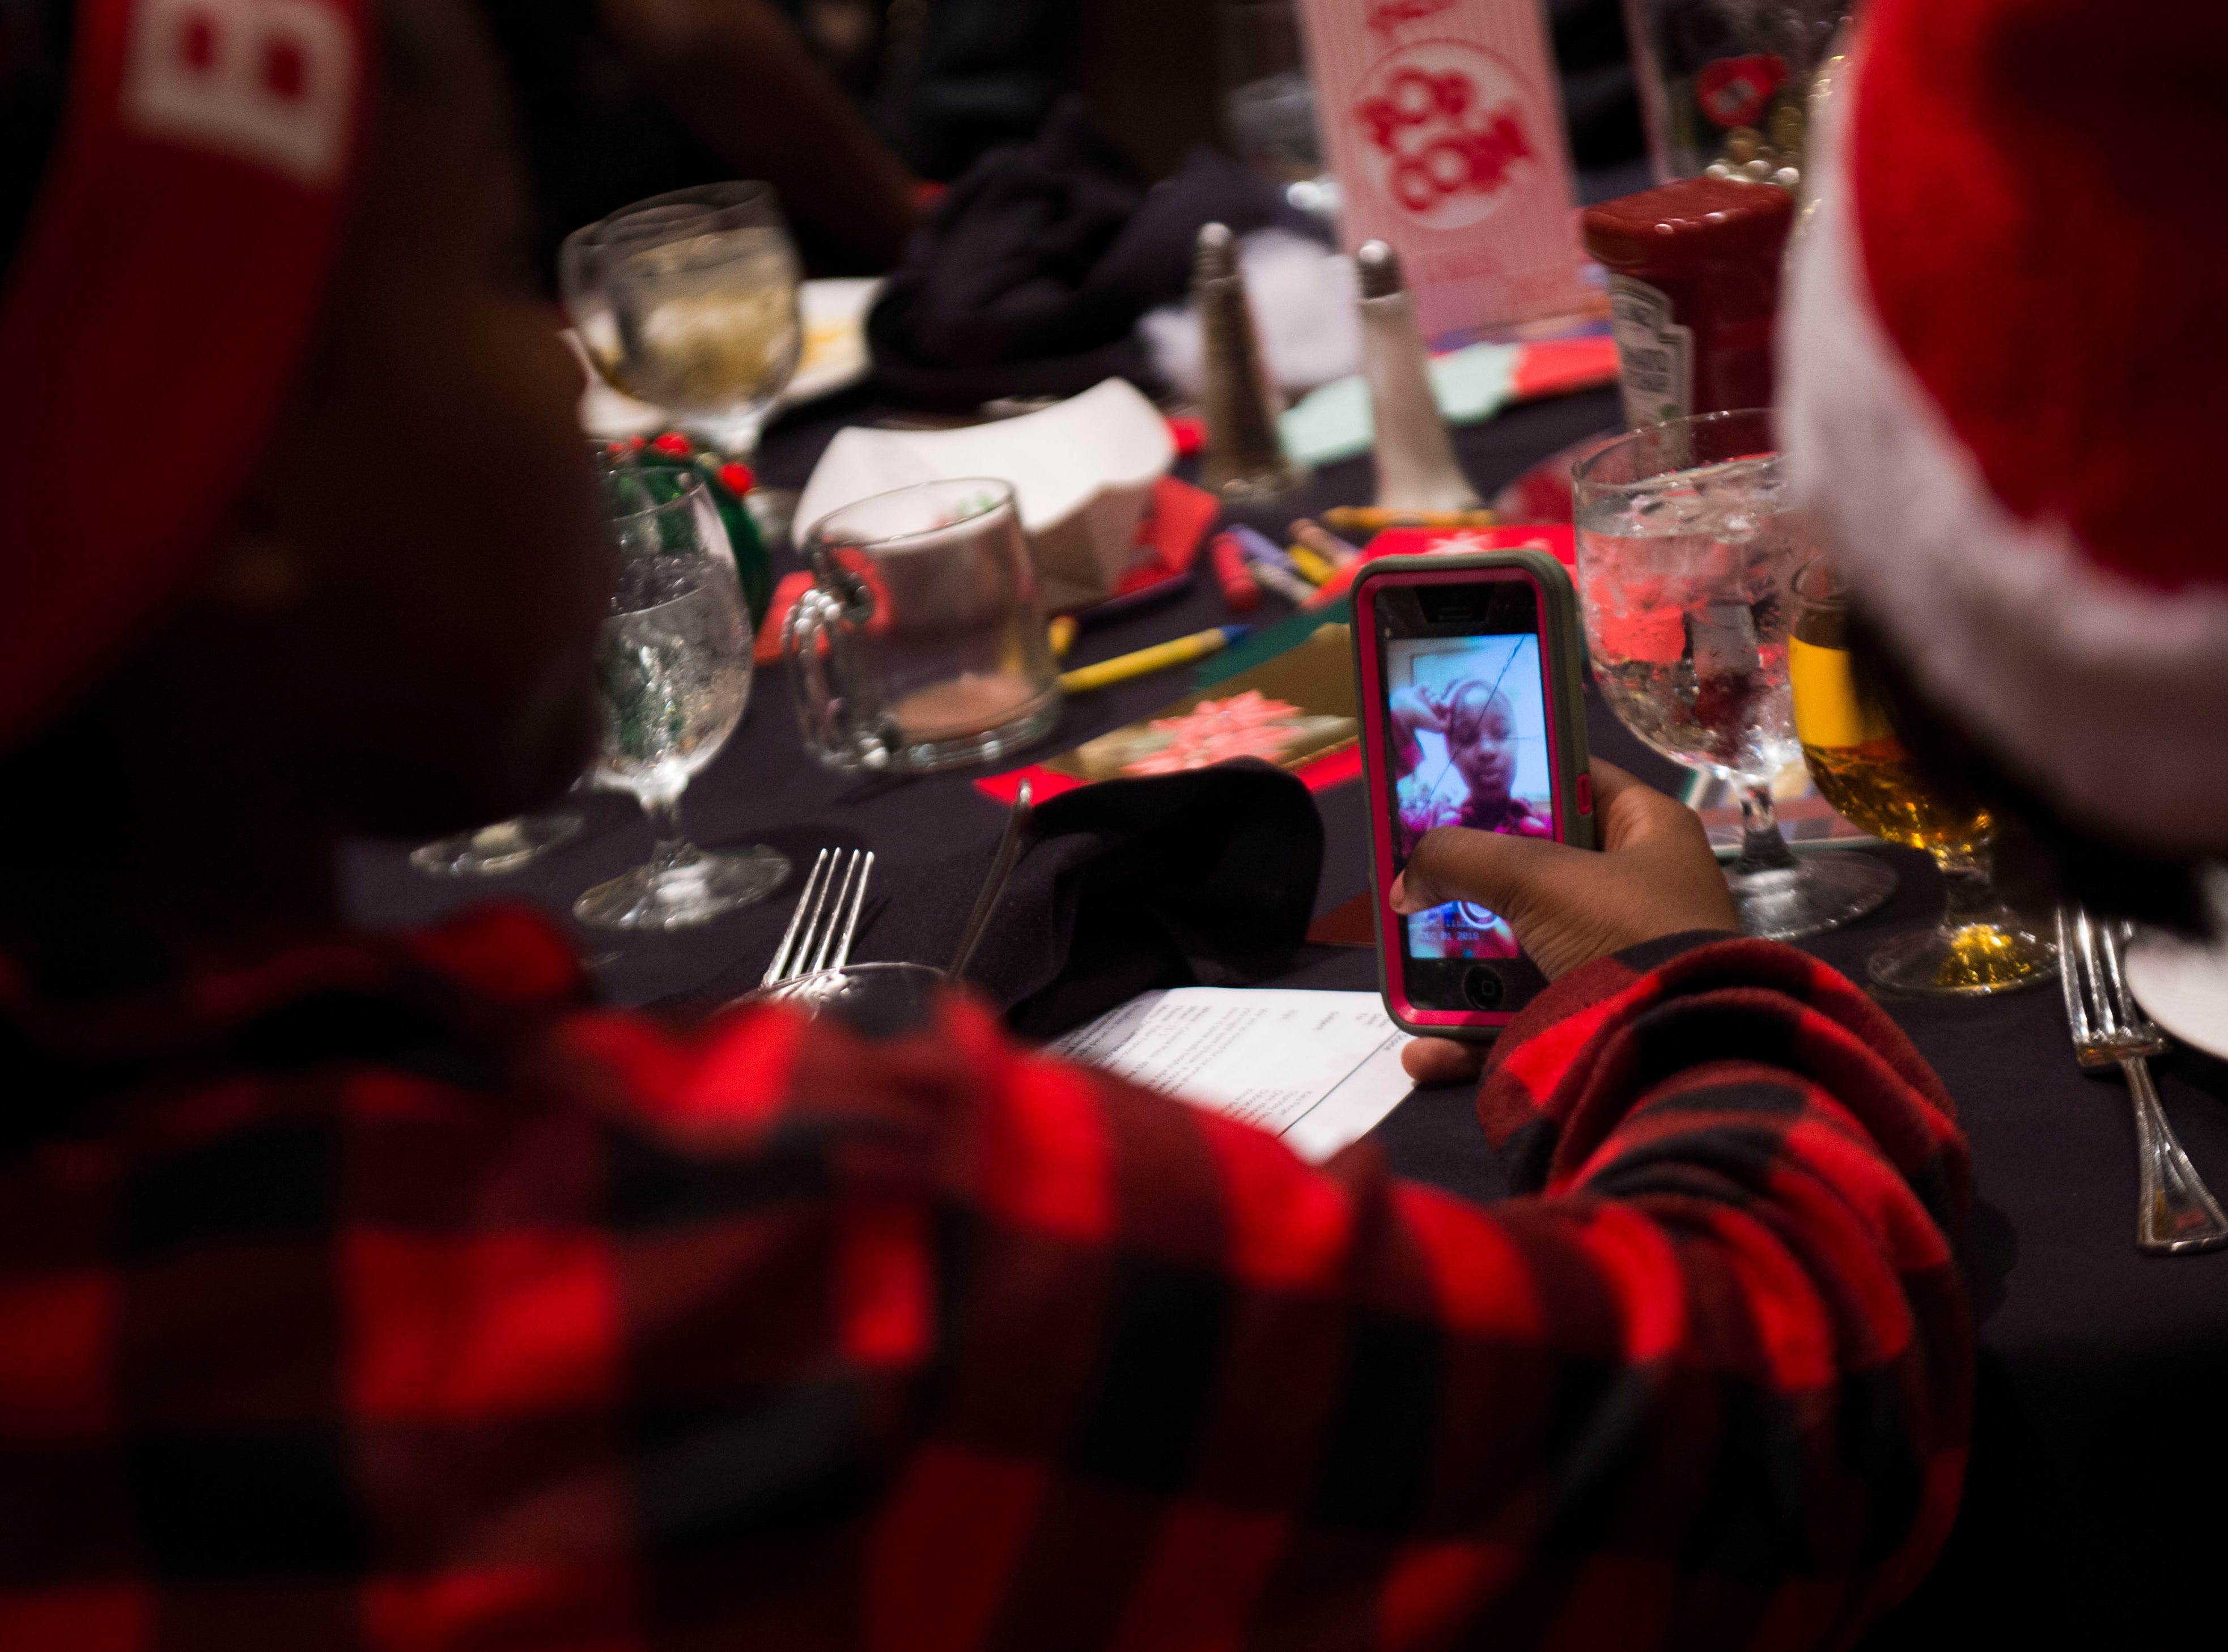 Maria Nshimirimana, 13, takes a selfie at the Big Brothers Big Sisters annual holiday party at the Crowne Plaza Saturday, Dec. 1, 2018. Nearly 300 mentors, mentees and family members were in attendance.